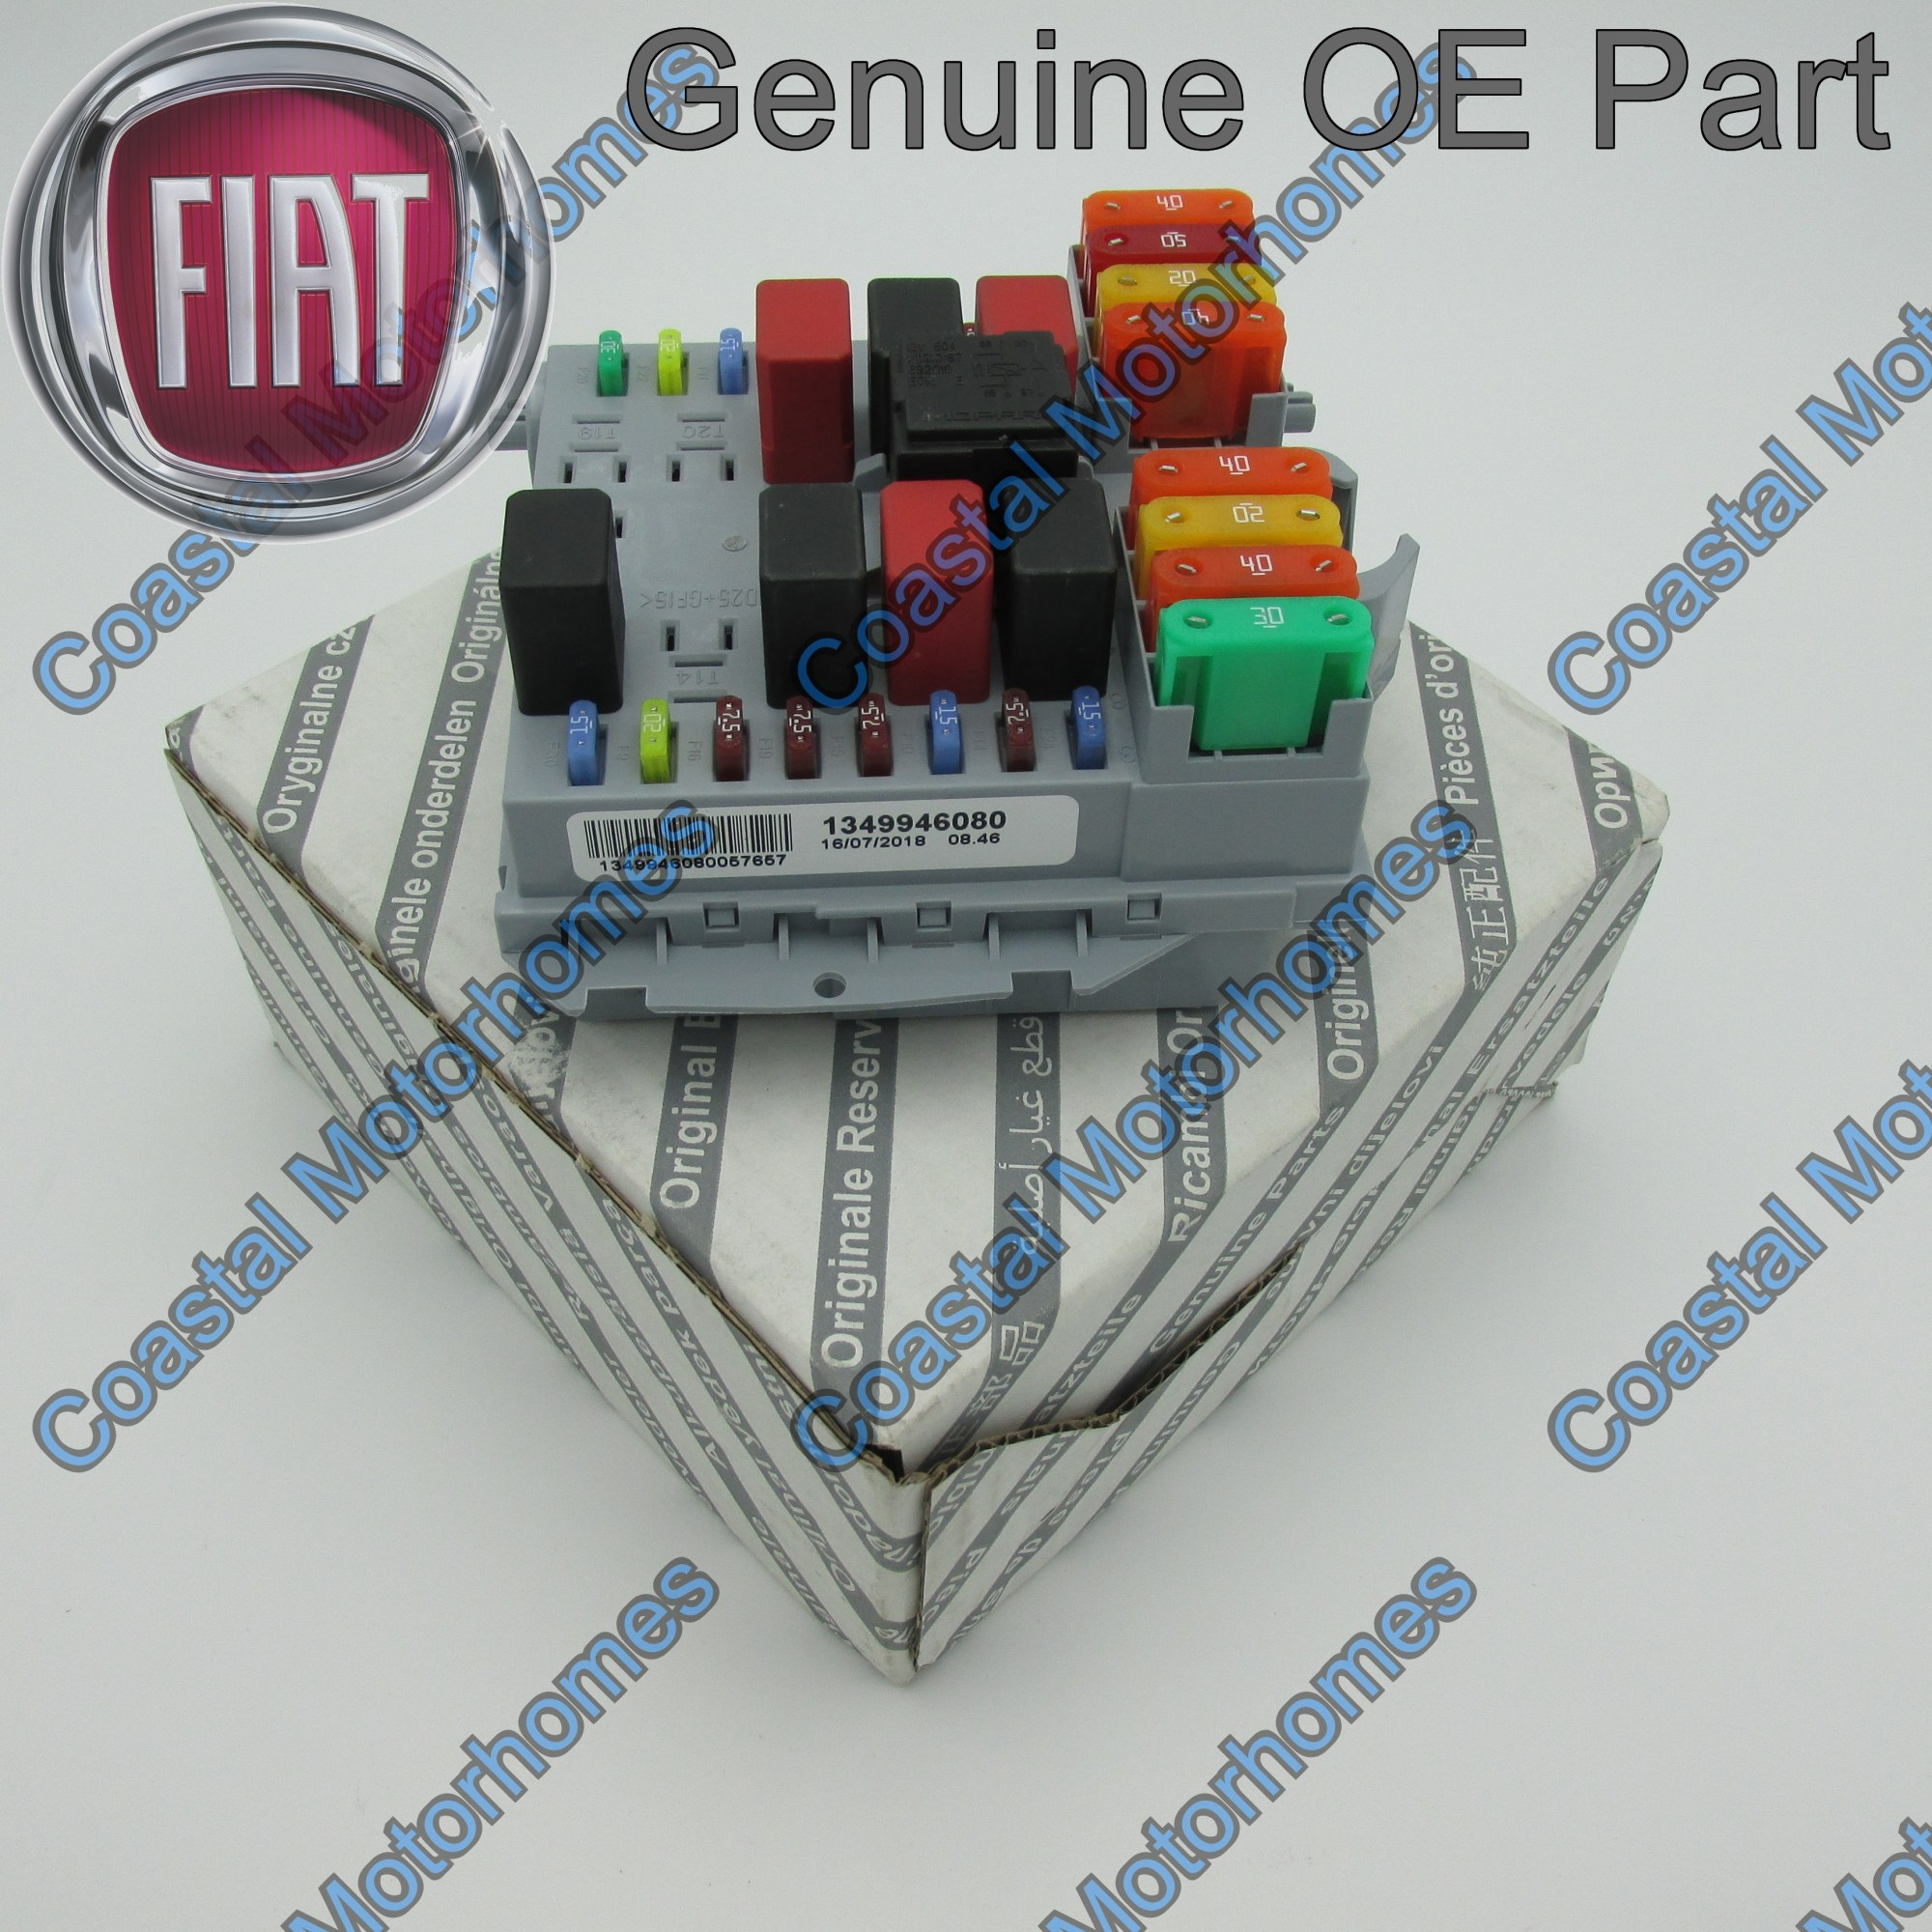 hight resolution of fiat ducato peugeot boxer citroen relay fuse box 2006 2011 oe